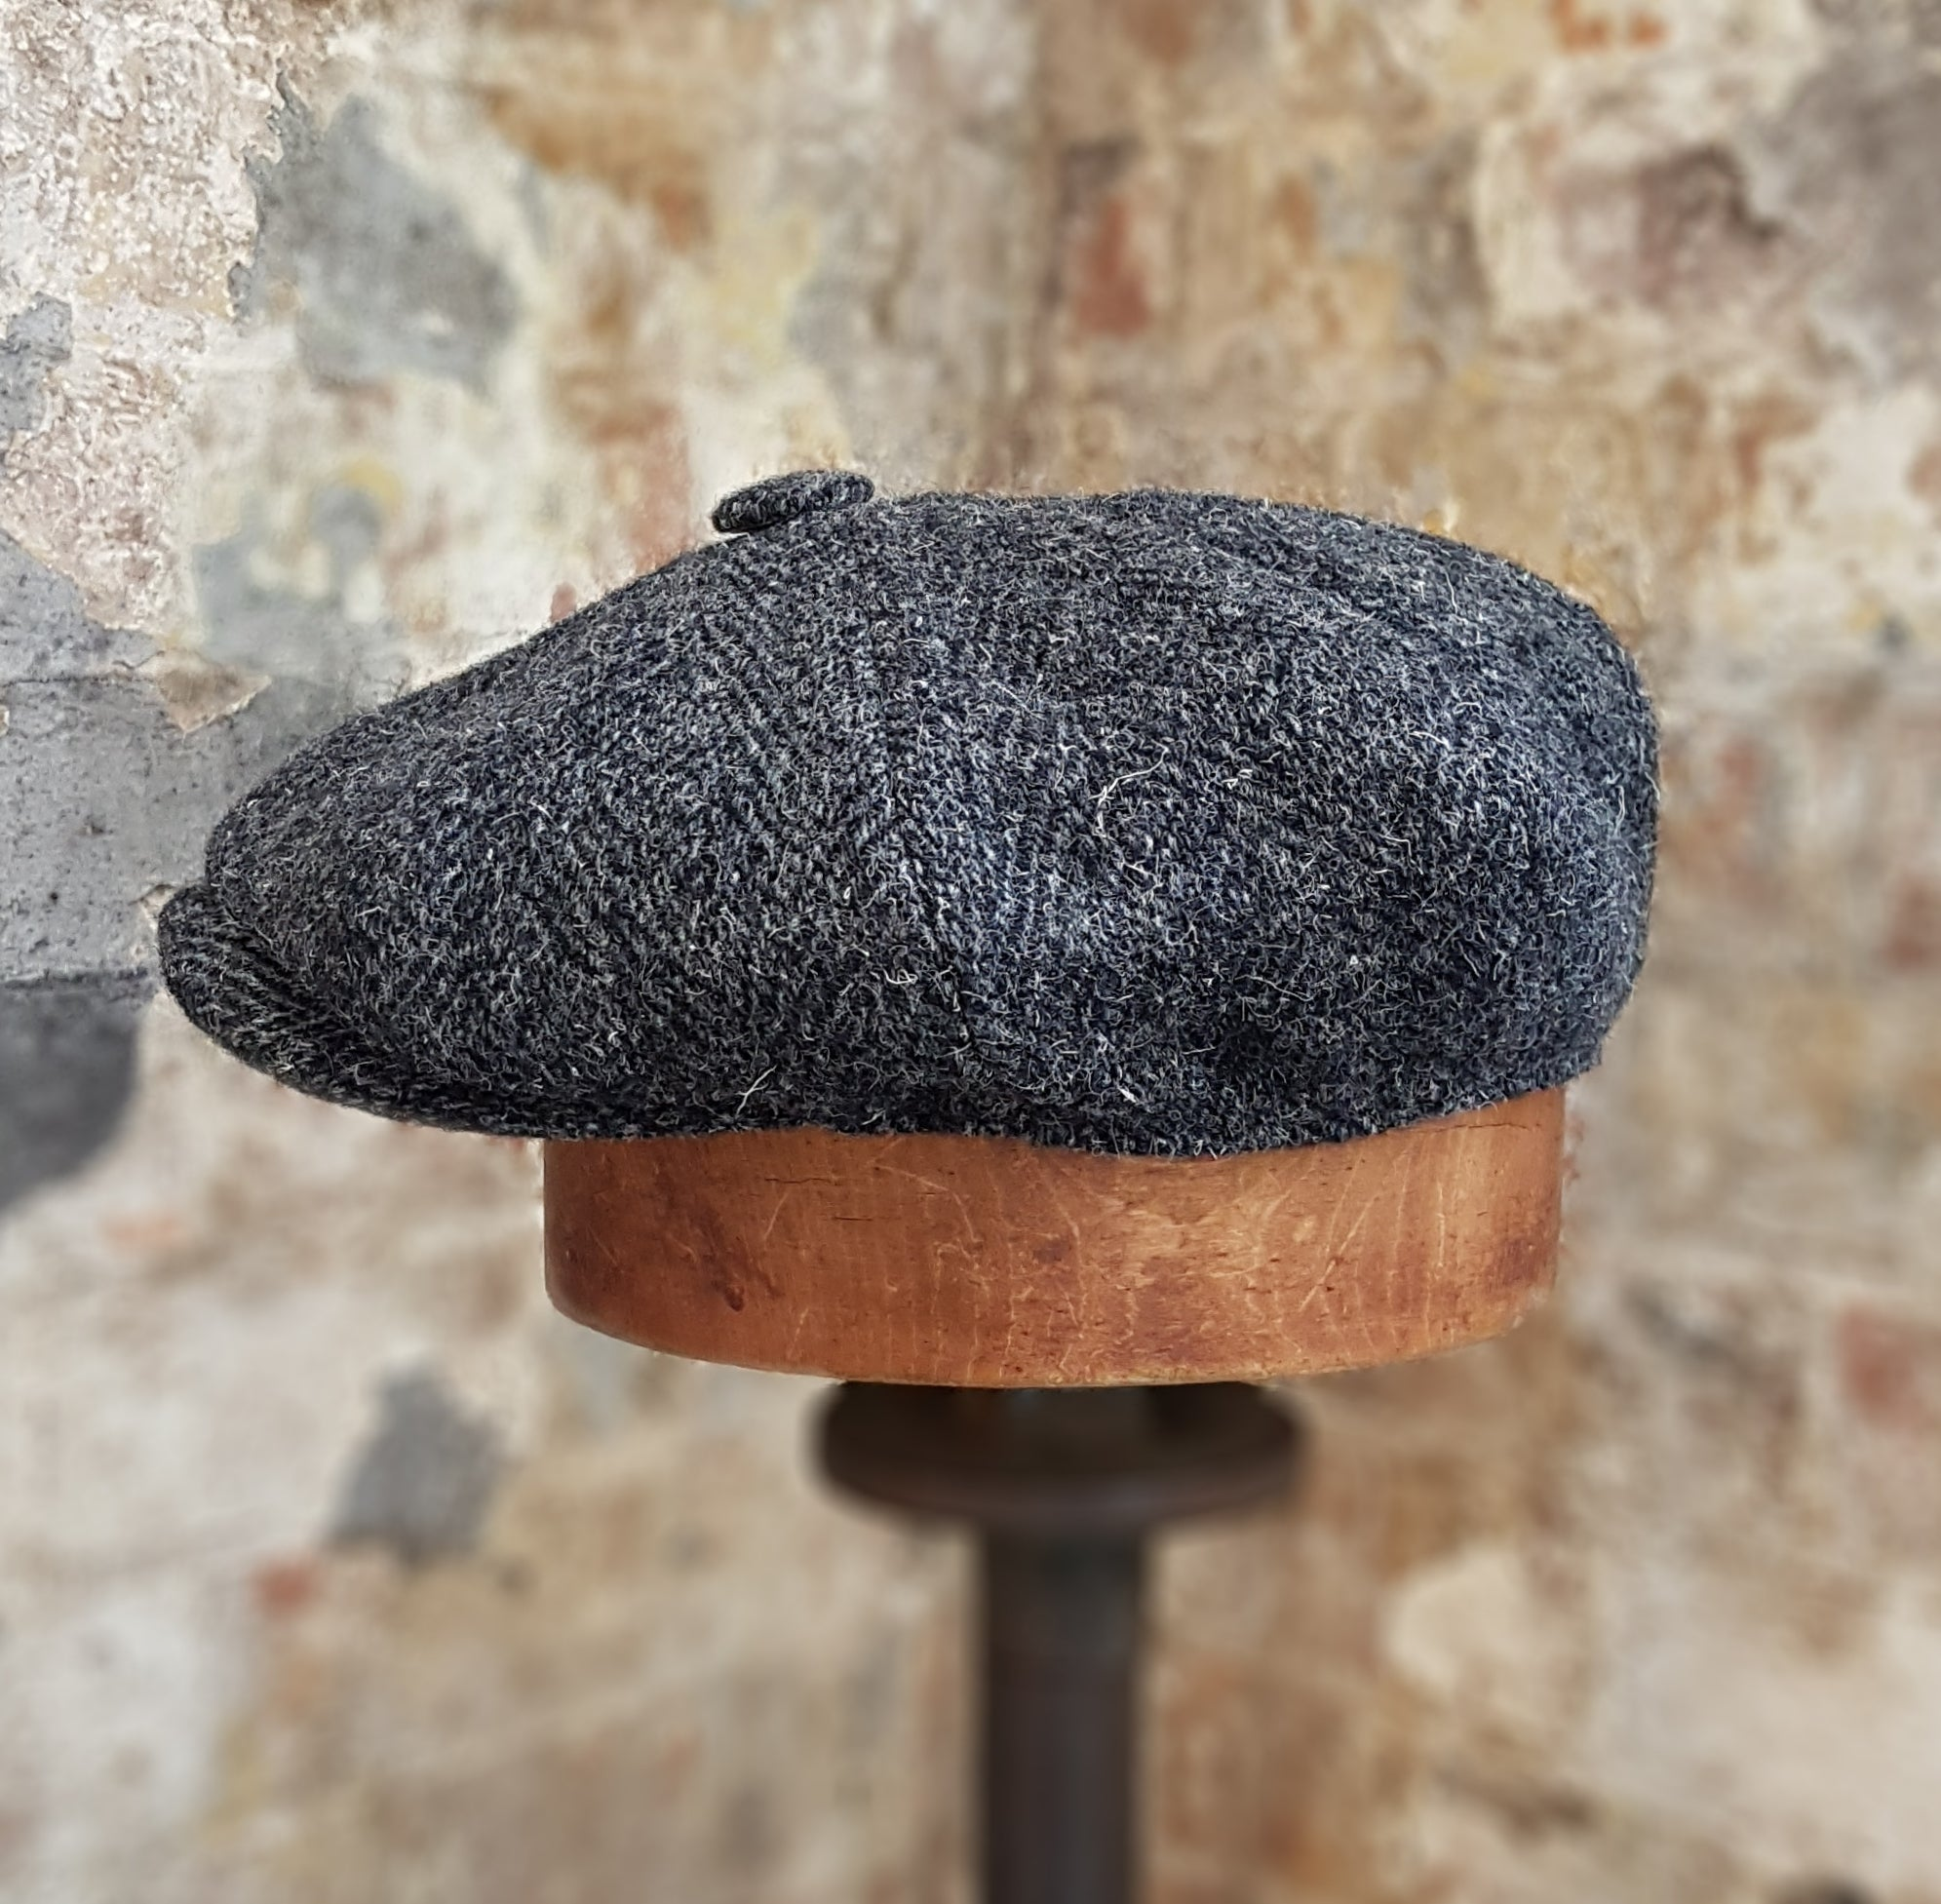 JACOB - Harris Tweed - Charcoal Grey & Black Herringbone  - Bakerboy Newsboy Cap